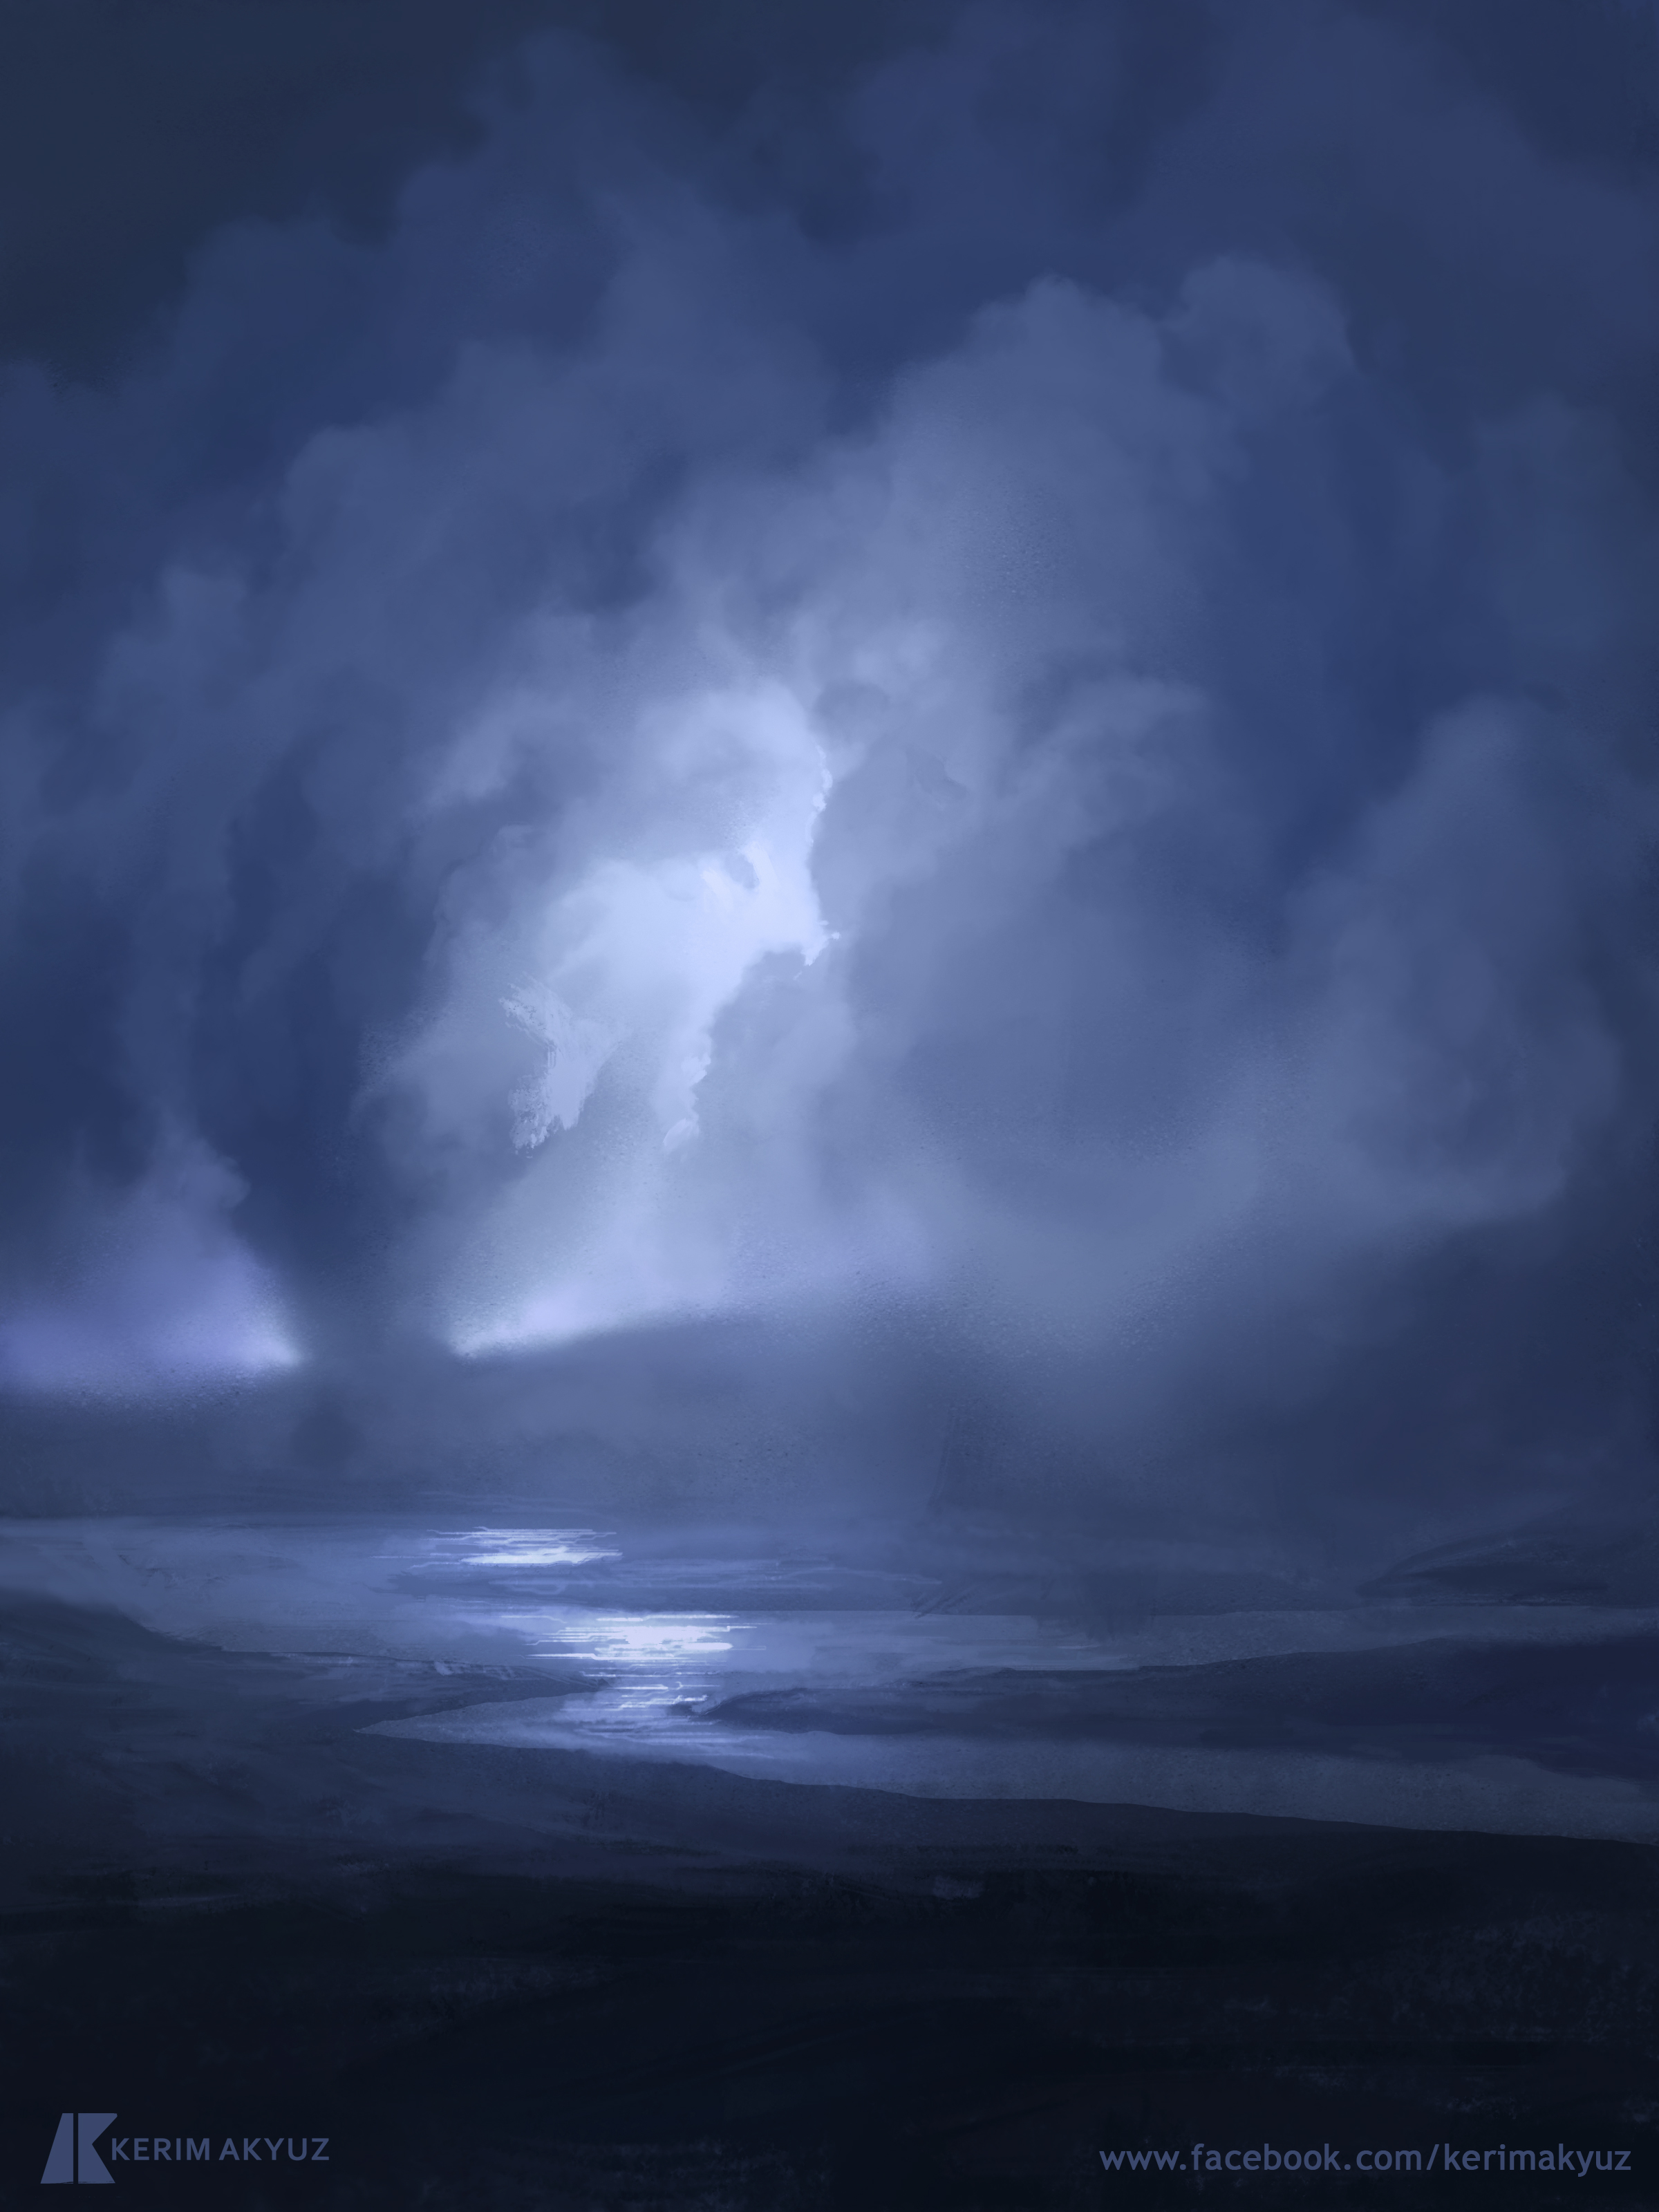 Daily Imagination #300 - Storm